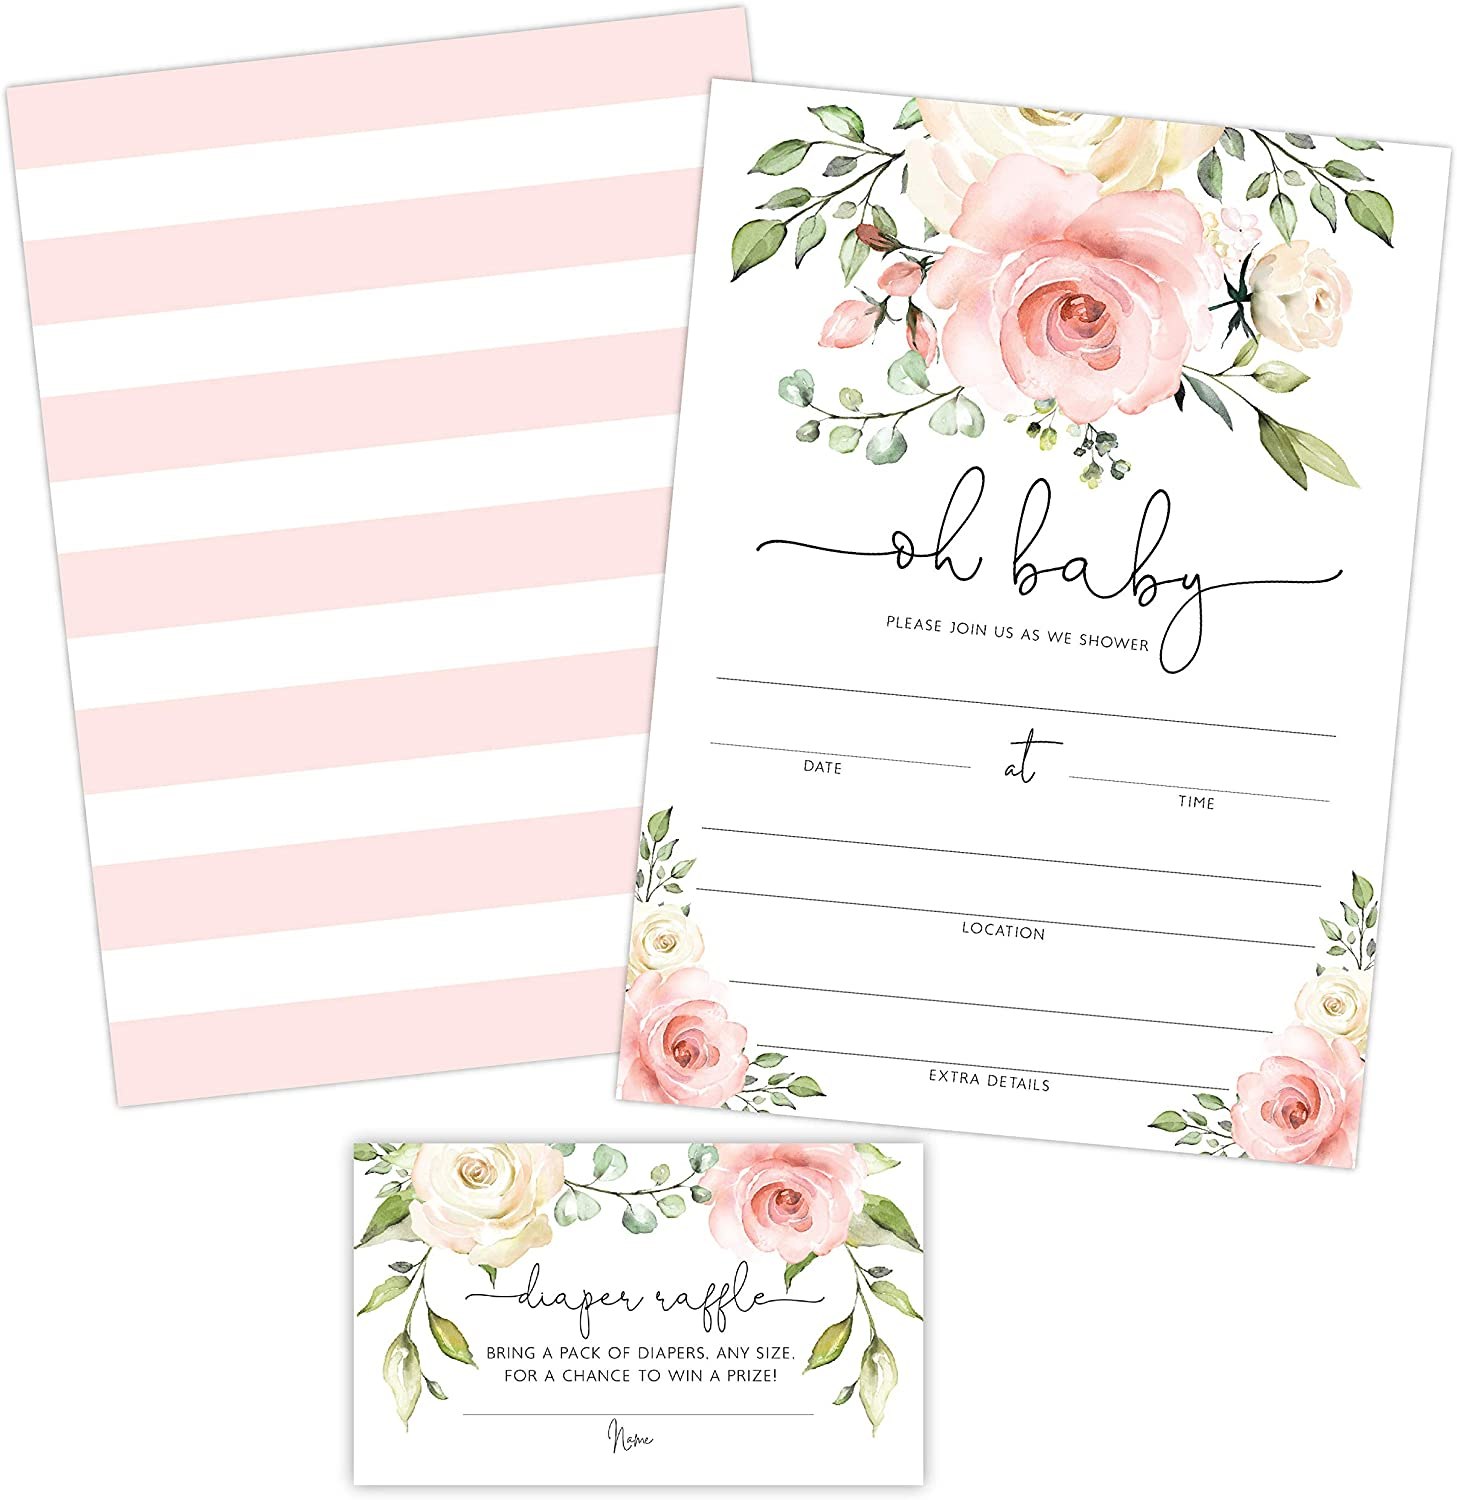 Floral Baby Shower Invitation, Blush Pink and White Rose Flowers Sprinkle Invites with Diaper Raffle Ticket Cards, 20 Count with Envelopes